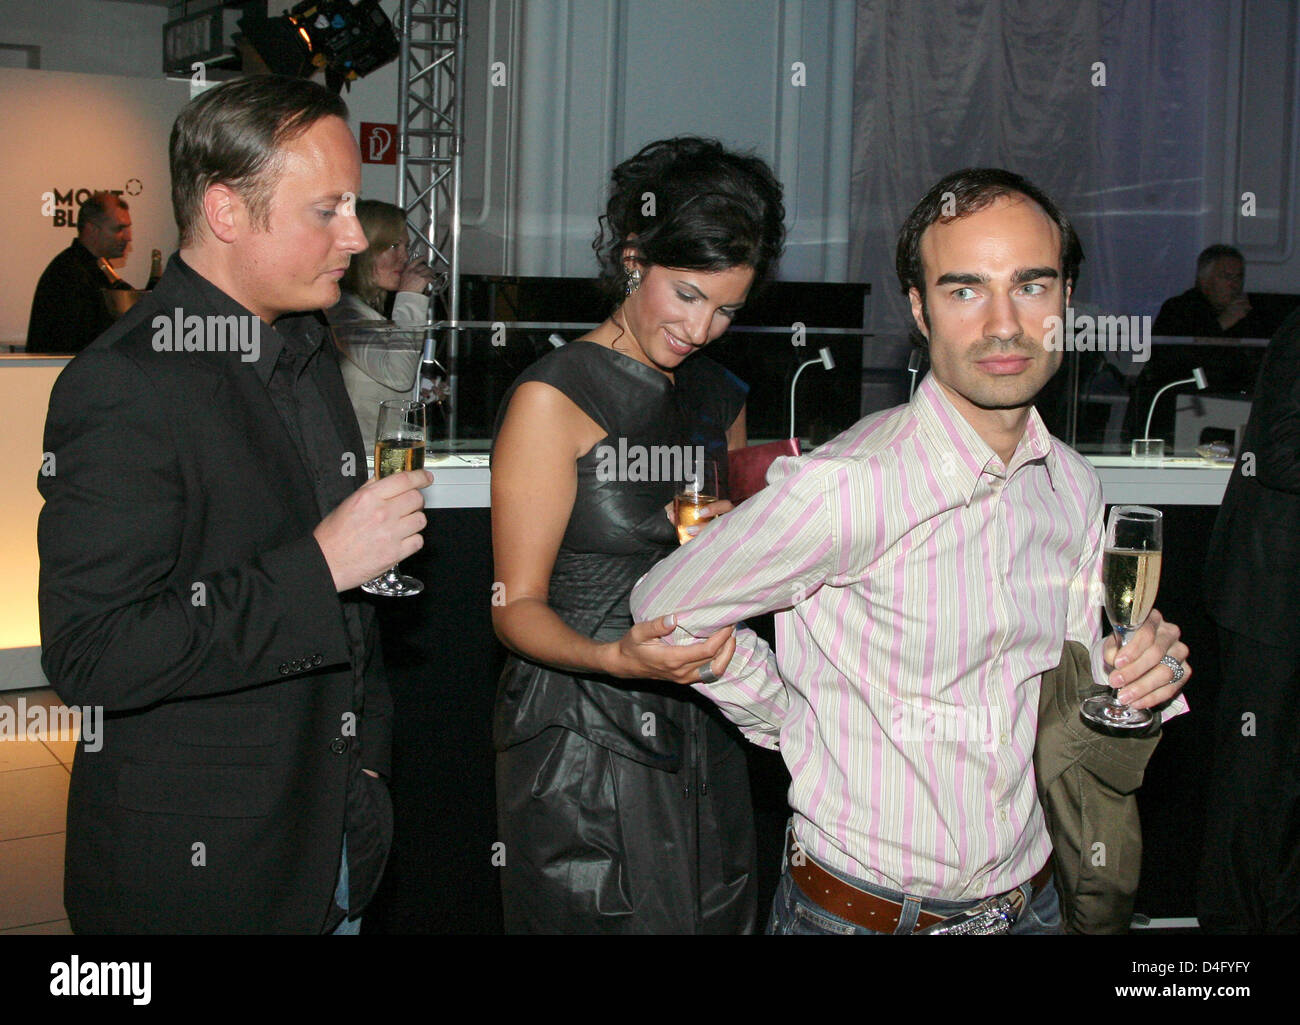 Producer Minu Barati (C), wife of former German Foreign Minister Joschka Fischer, and fashion designers Claus Unrath - Stock Image